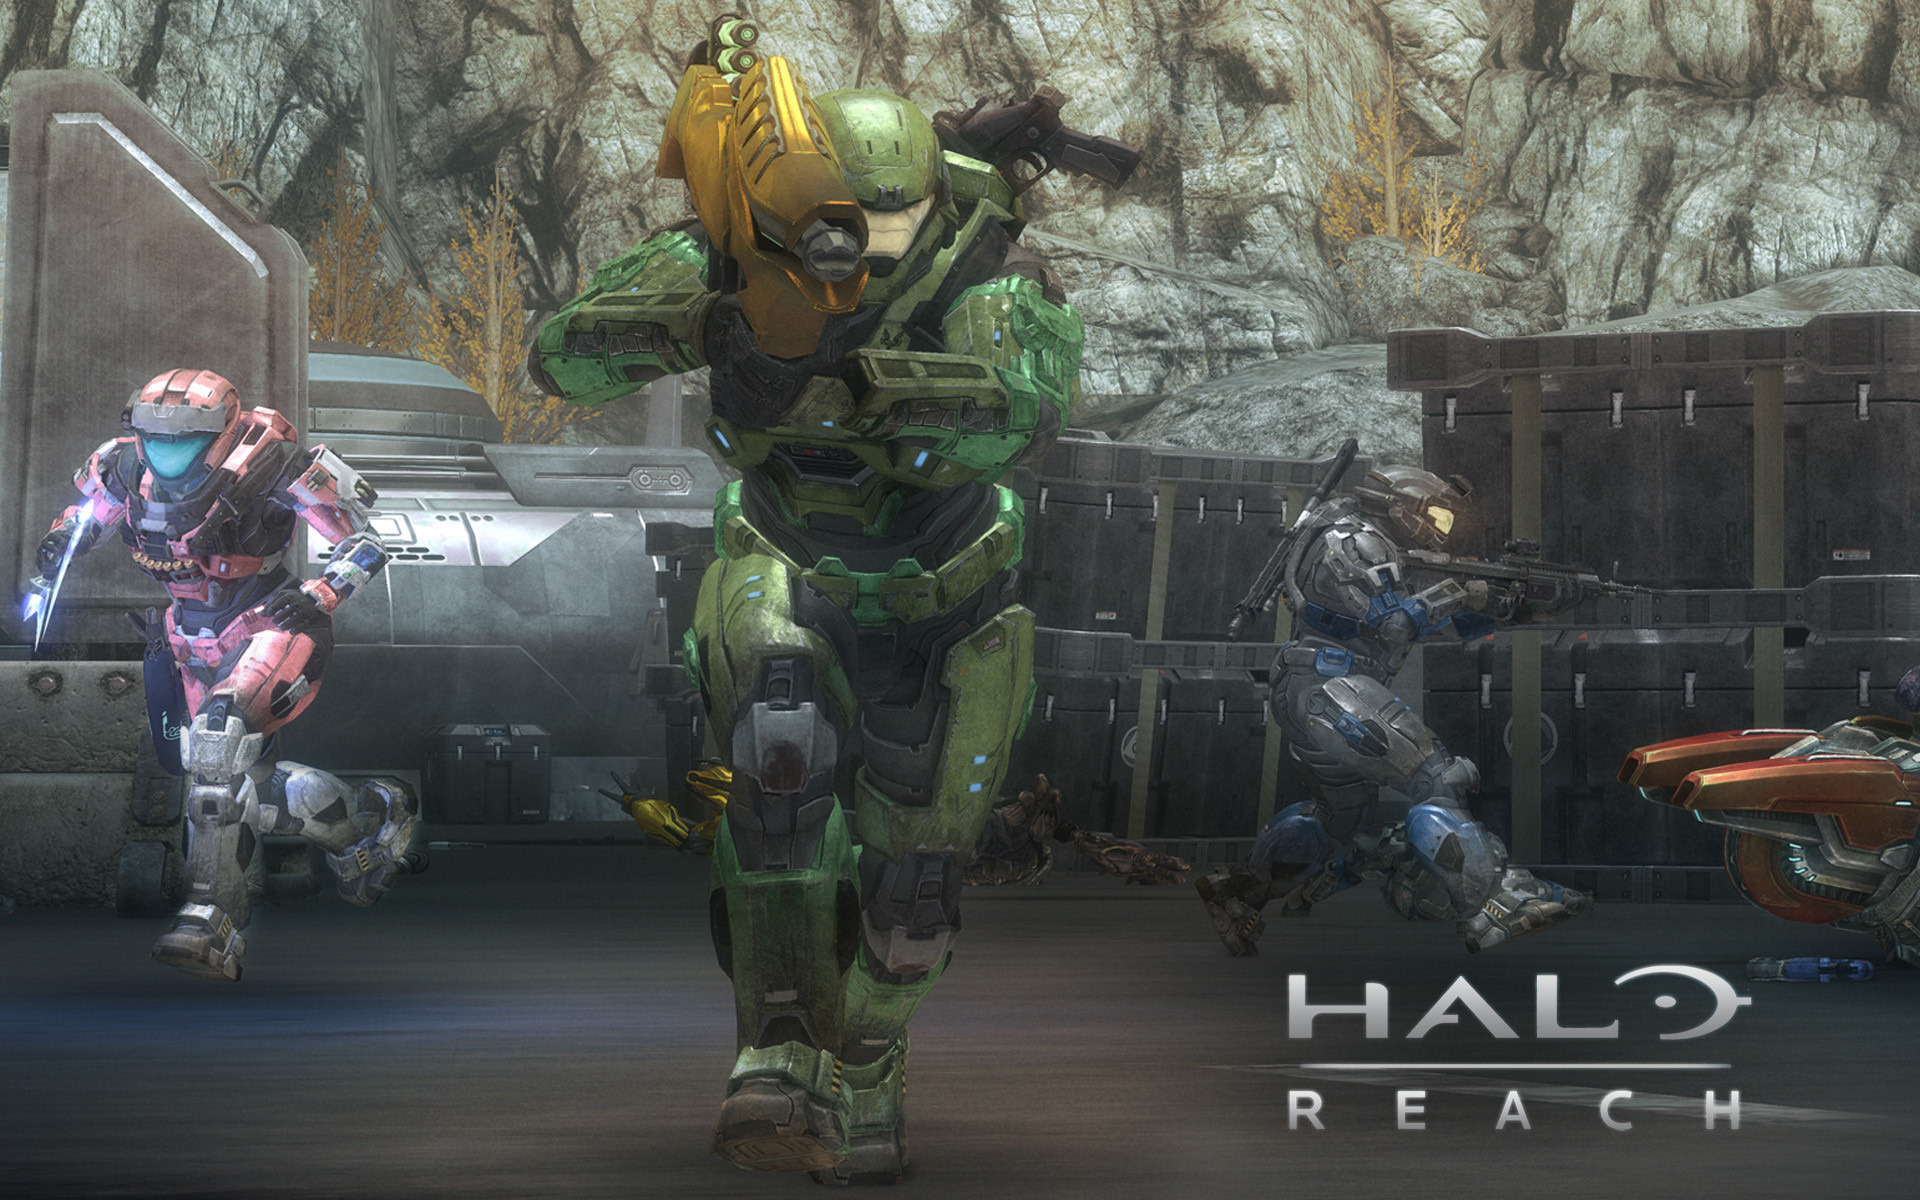 1920x1200 1920x1080 HD Halo Reach Emile Wallpapers and Photos, 1920x1080 – By Matilde  Royster